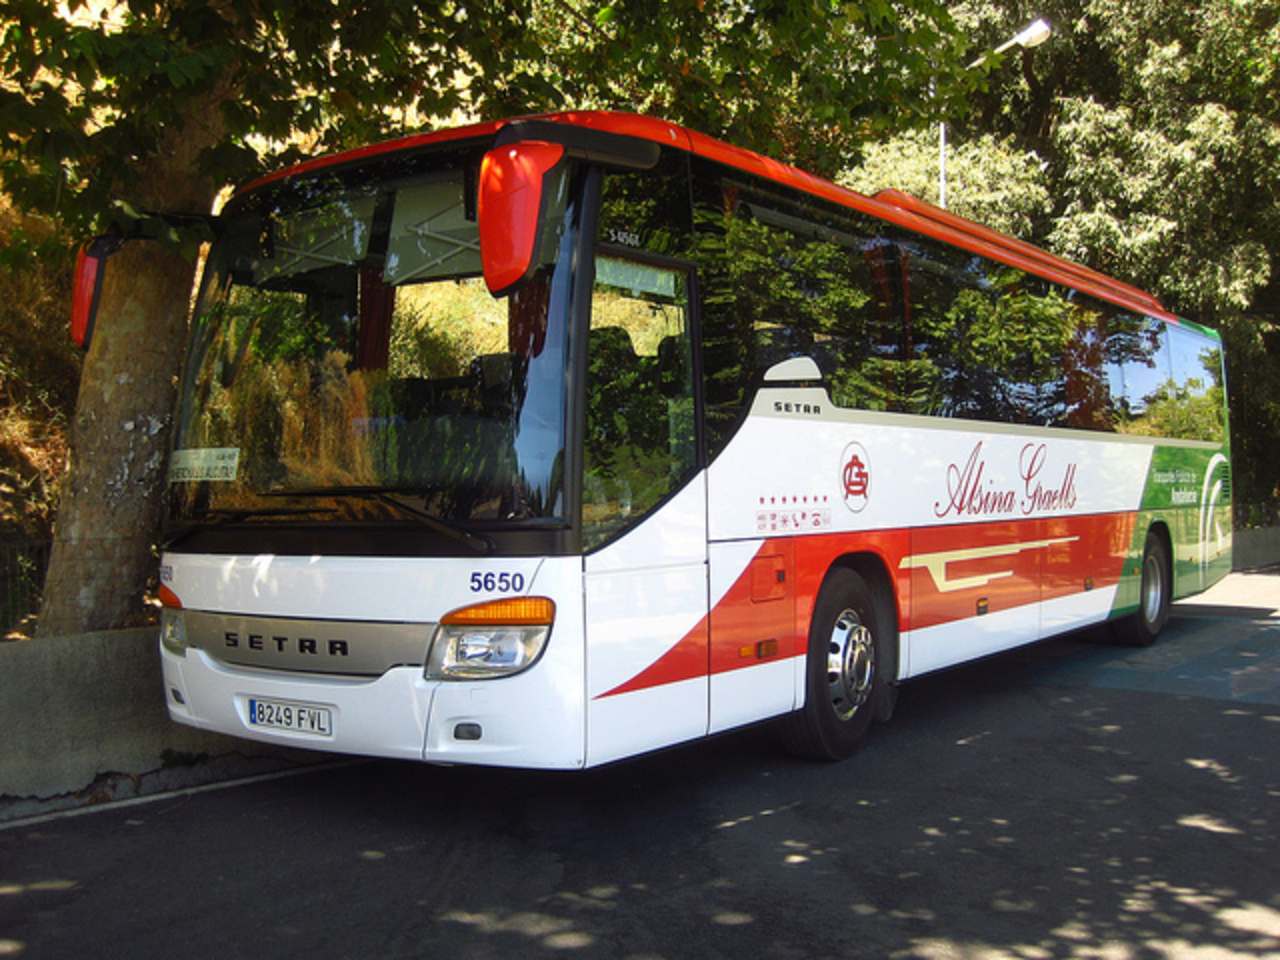 Setra S 415 GT de Alsina Graells Sur | Flickr - Photo Sharing!